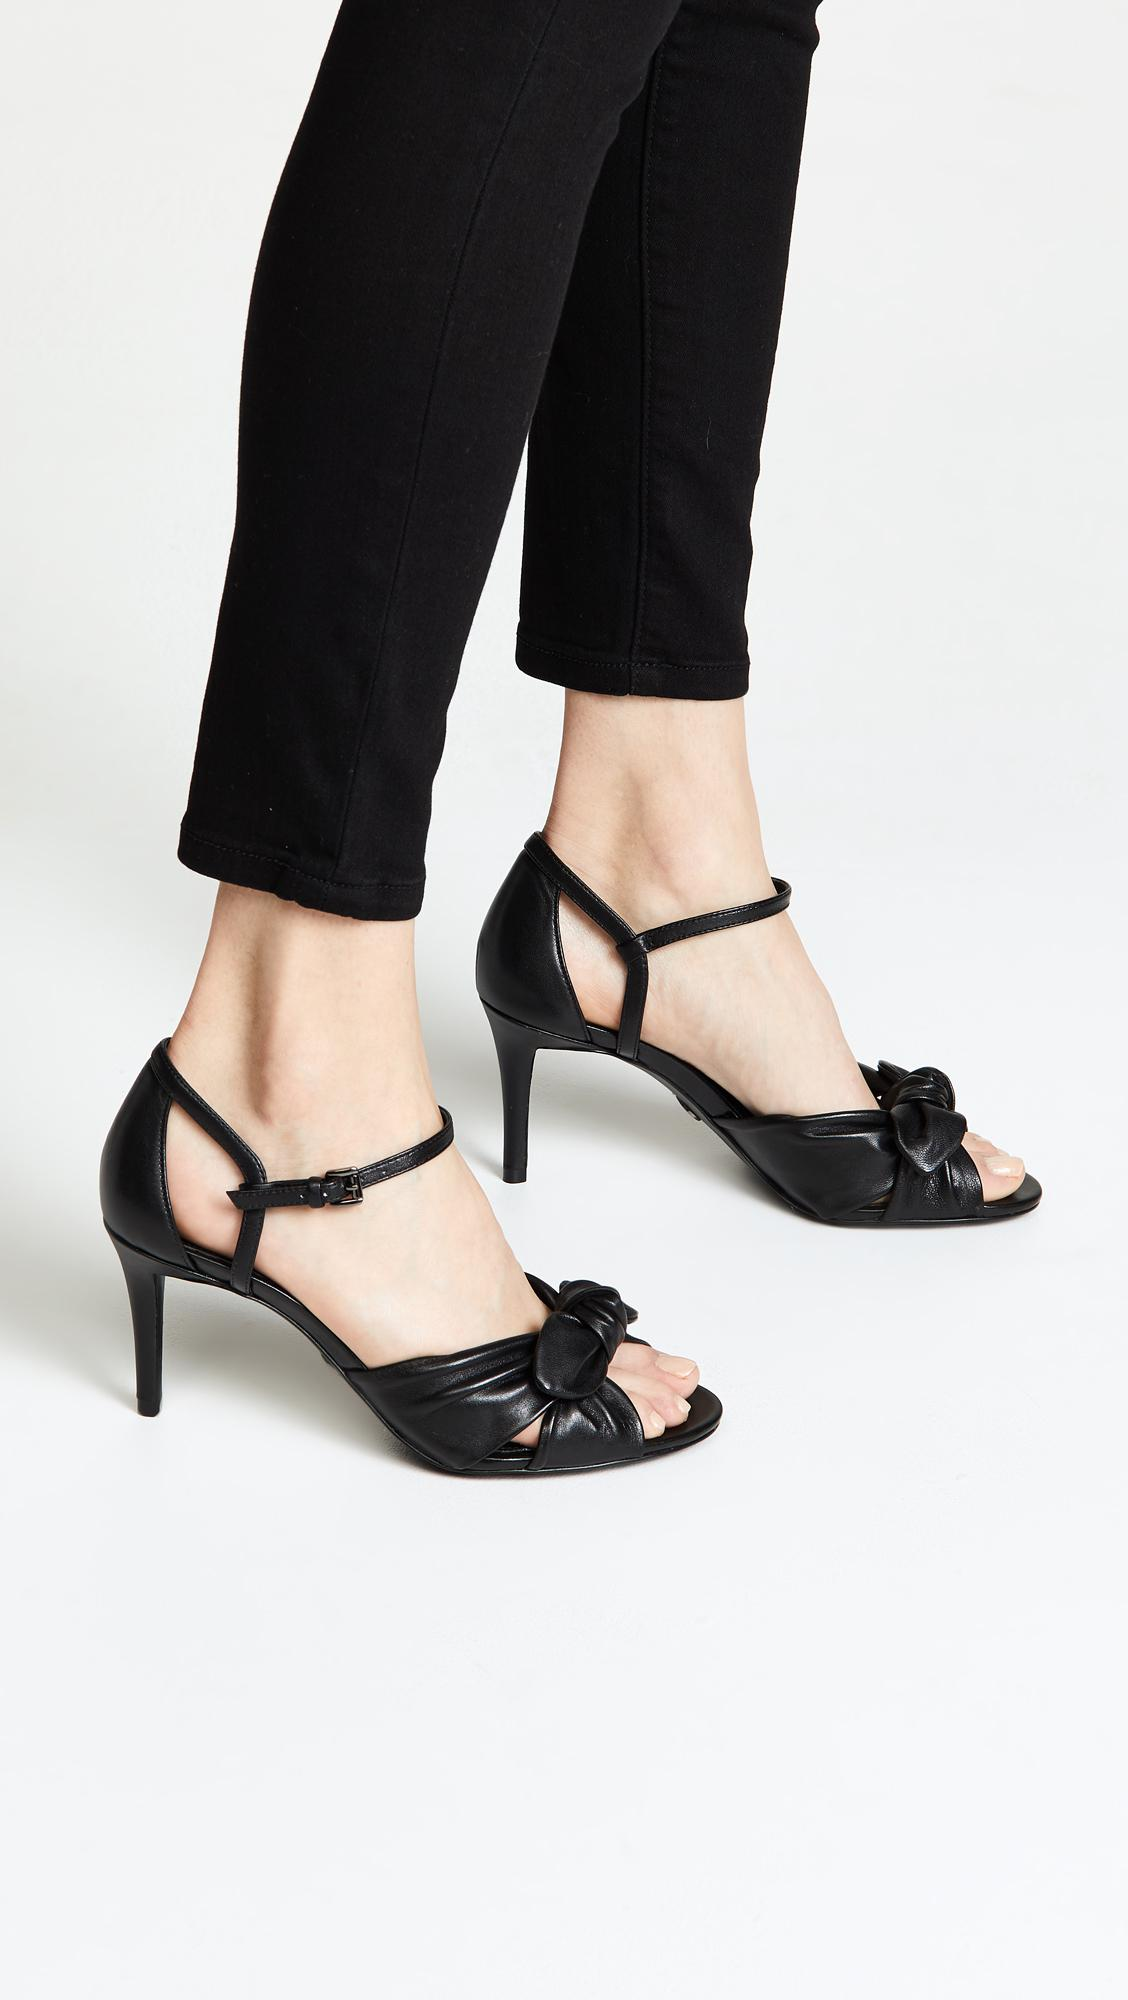 5a54aed8beb Lyst - MICHAEL Michael Kors Pippa Strappy Sandals in Black